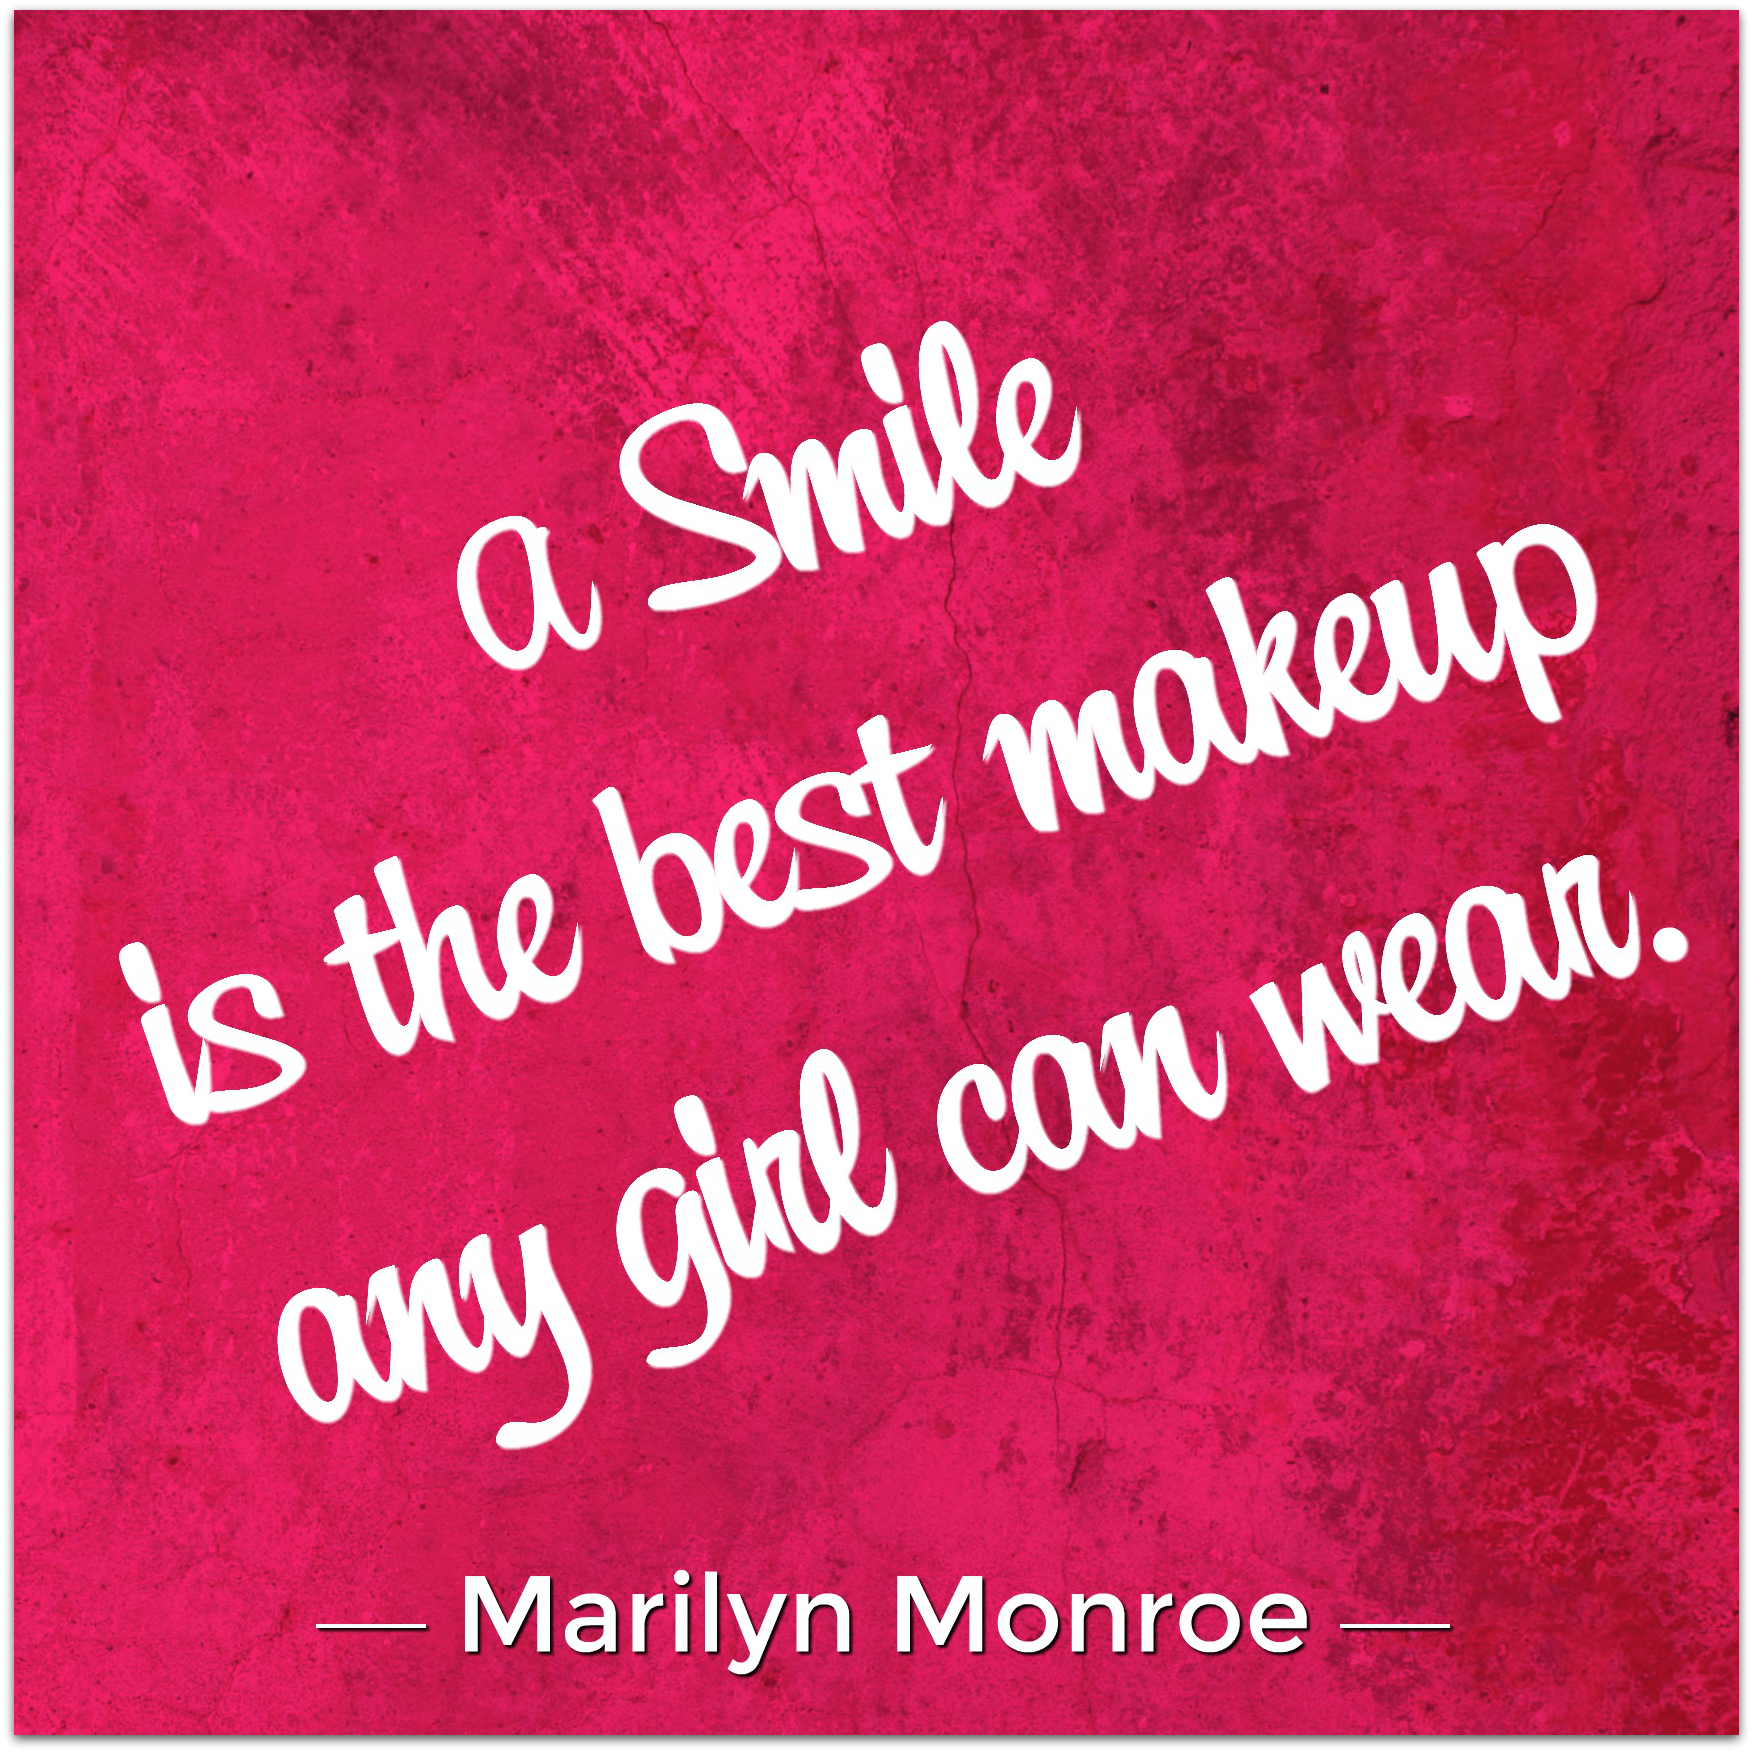 quote_marilyn-monroe